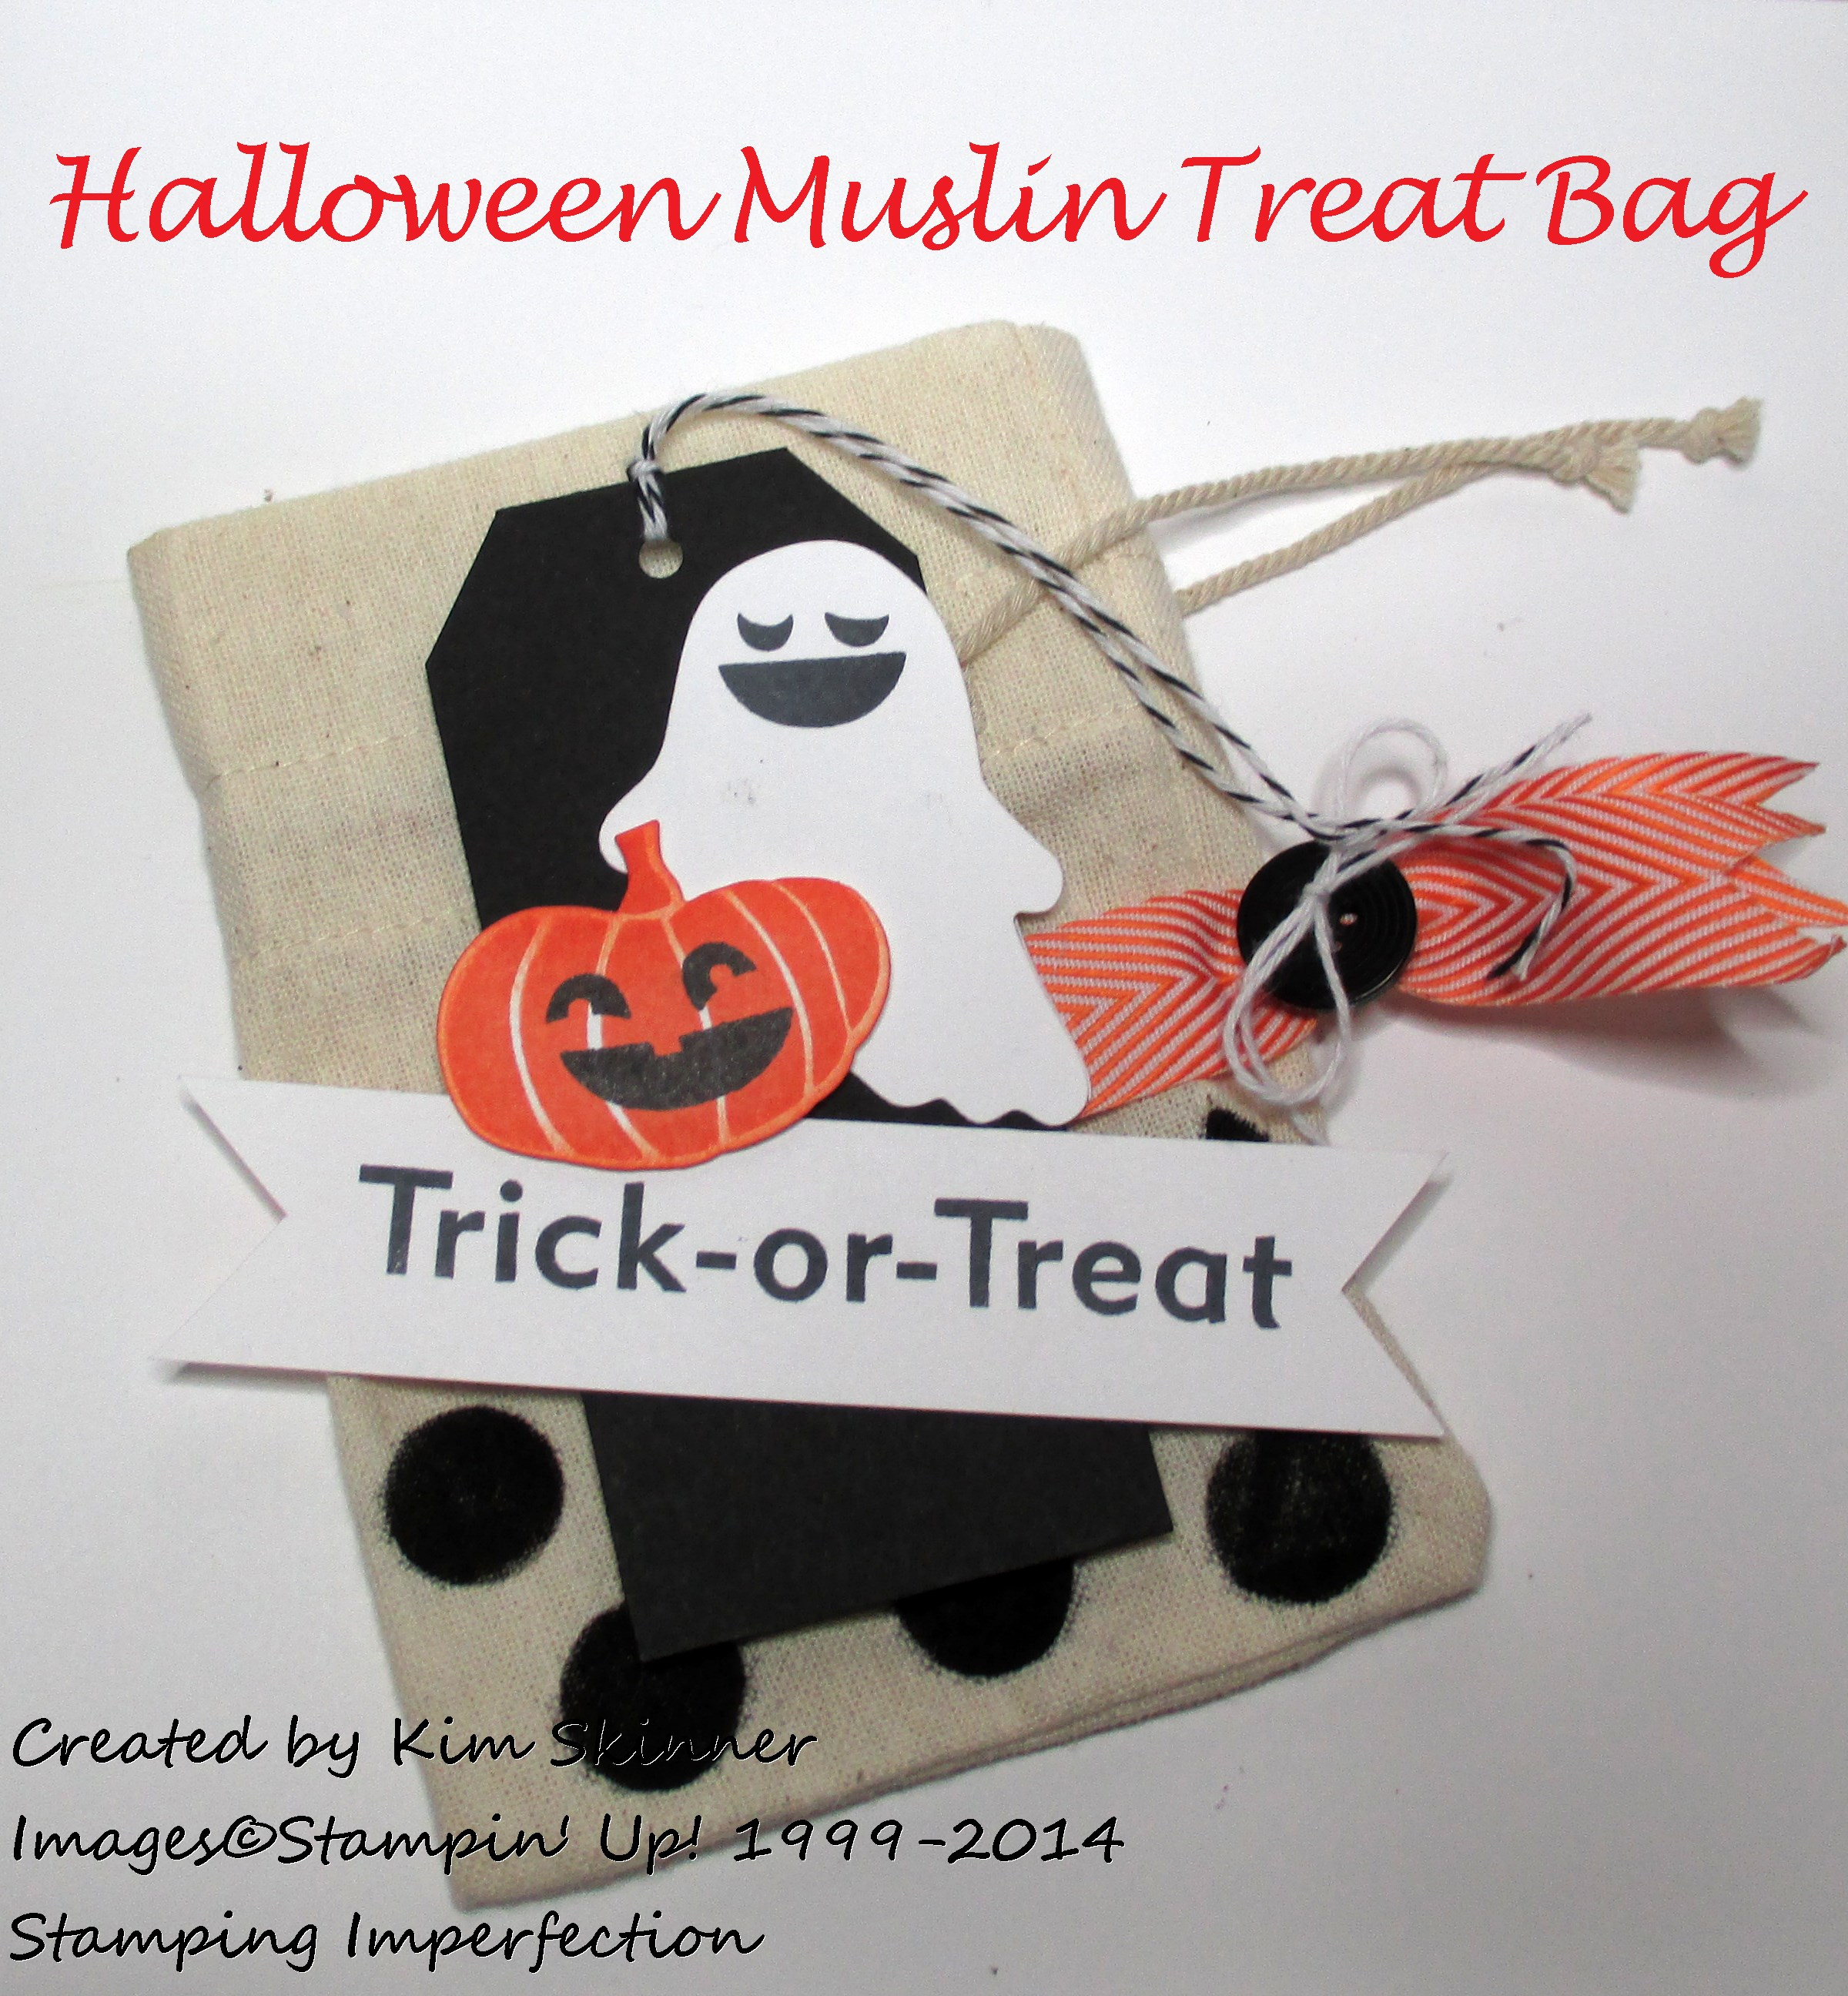 Stamping Imperfection Halloween Muslin Treat Bag